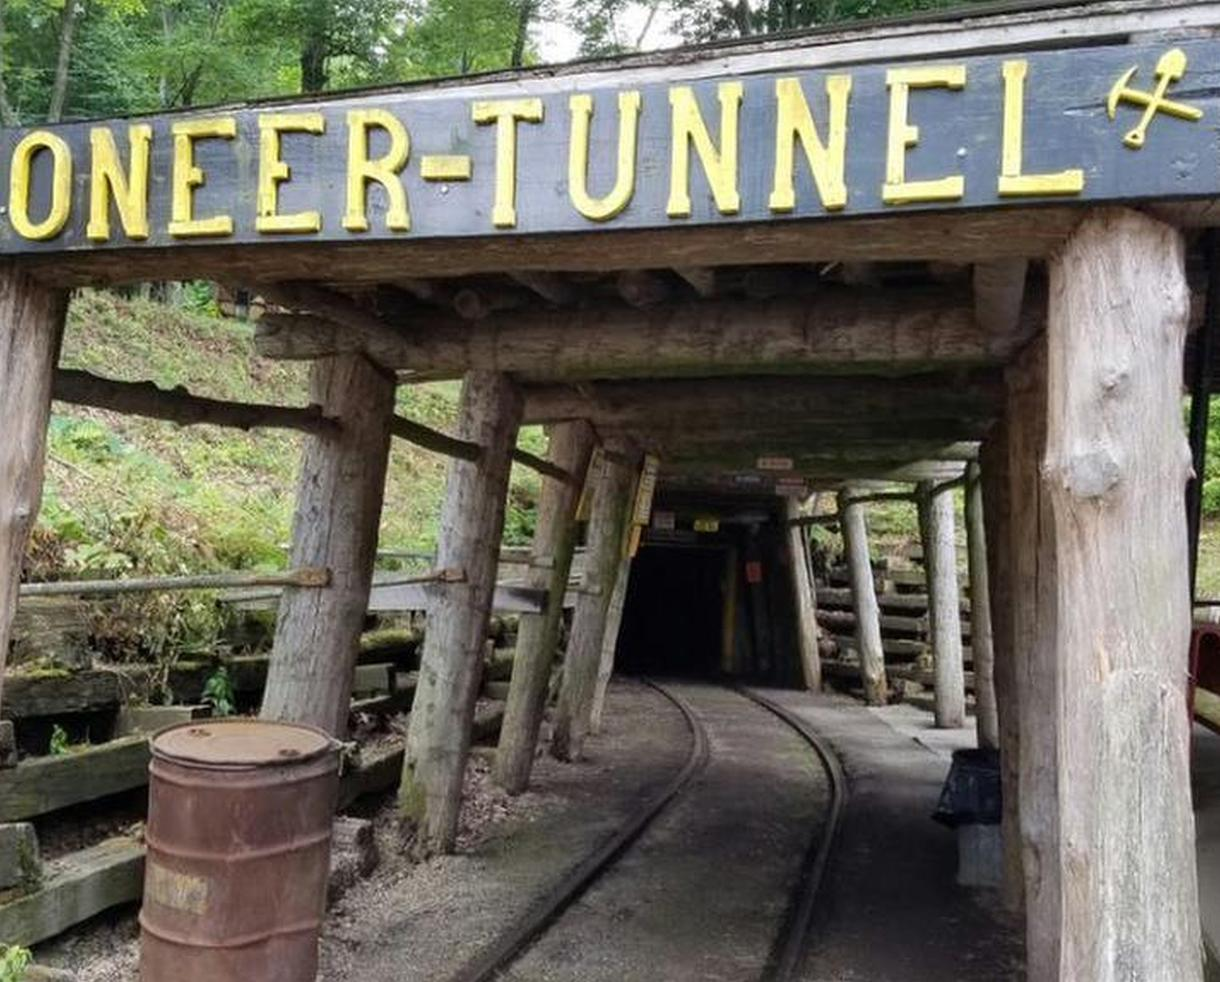 Coal Mine Tour and Steam Train Ride for Two or Four People at Pioneer Tunnel